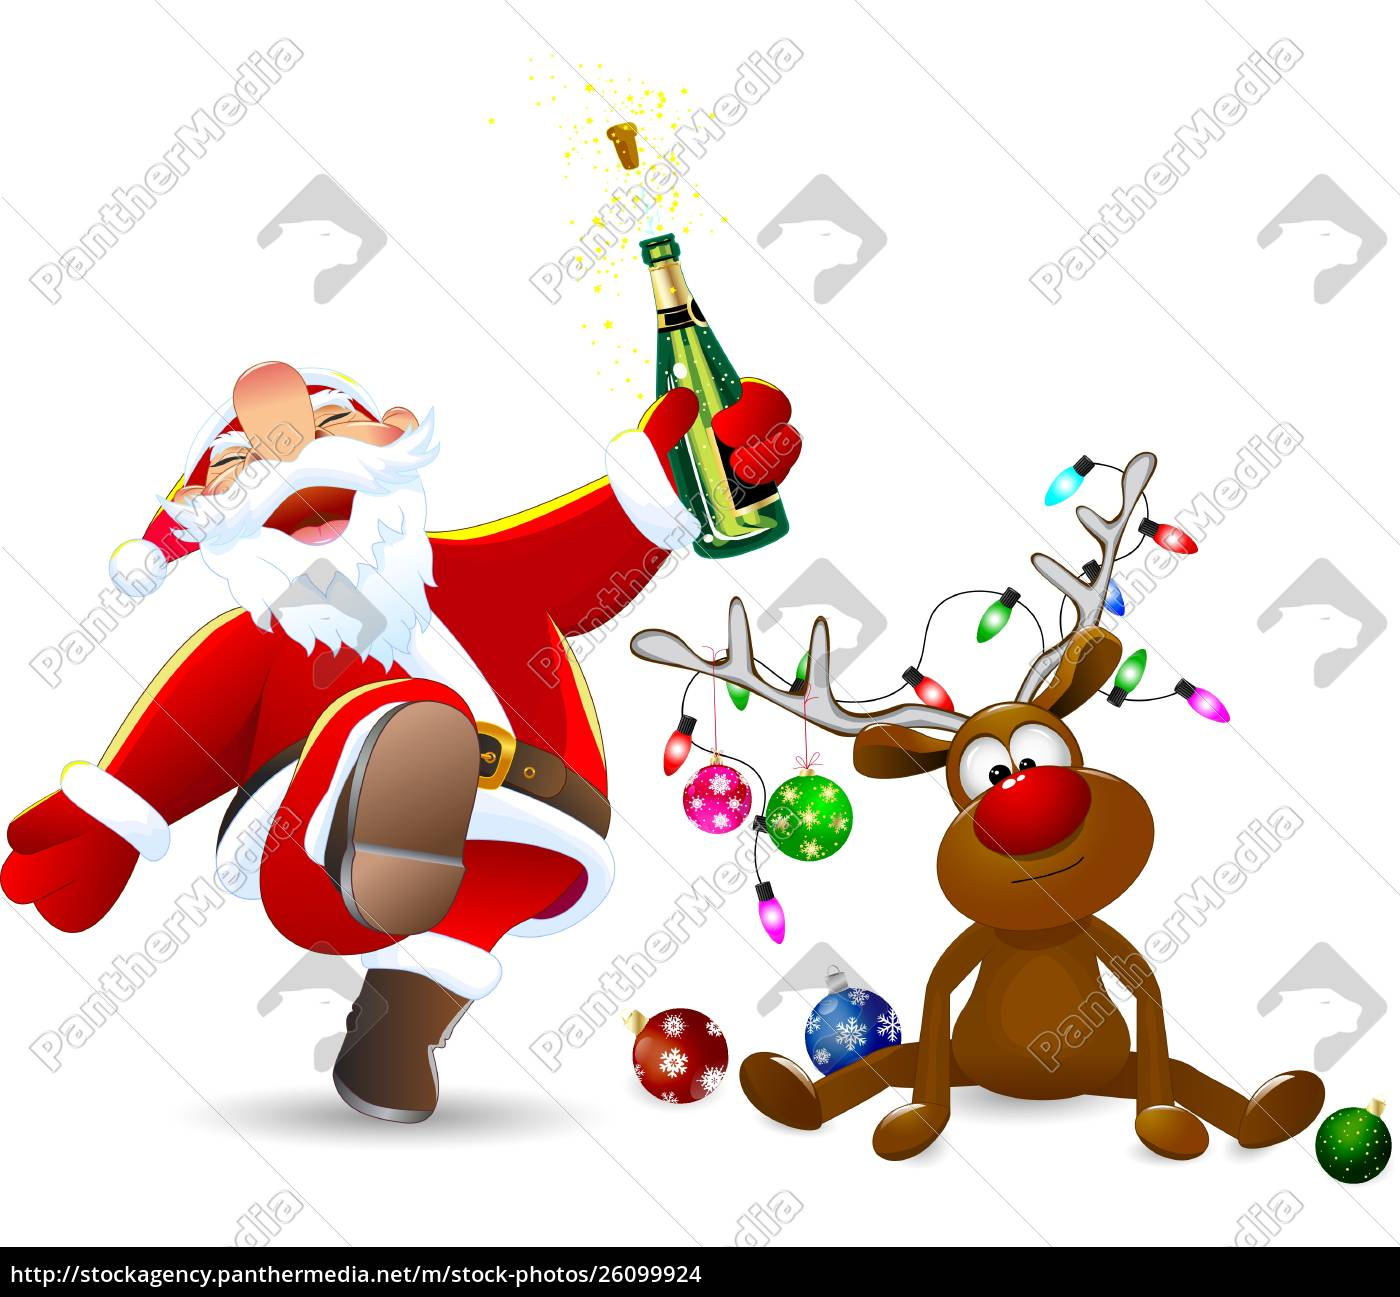 merry, santa, claus, and, a, deer - 26099924